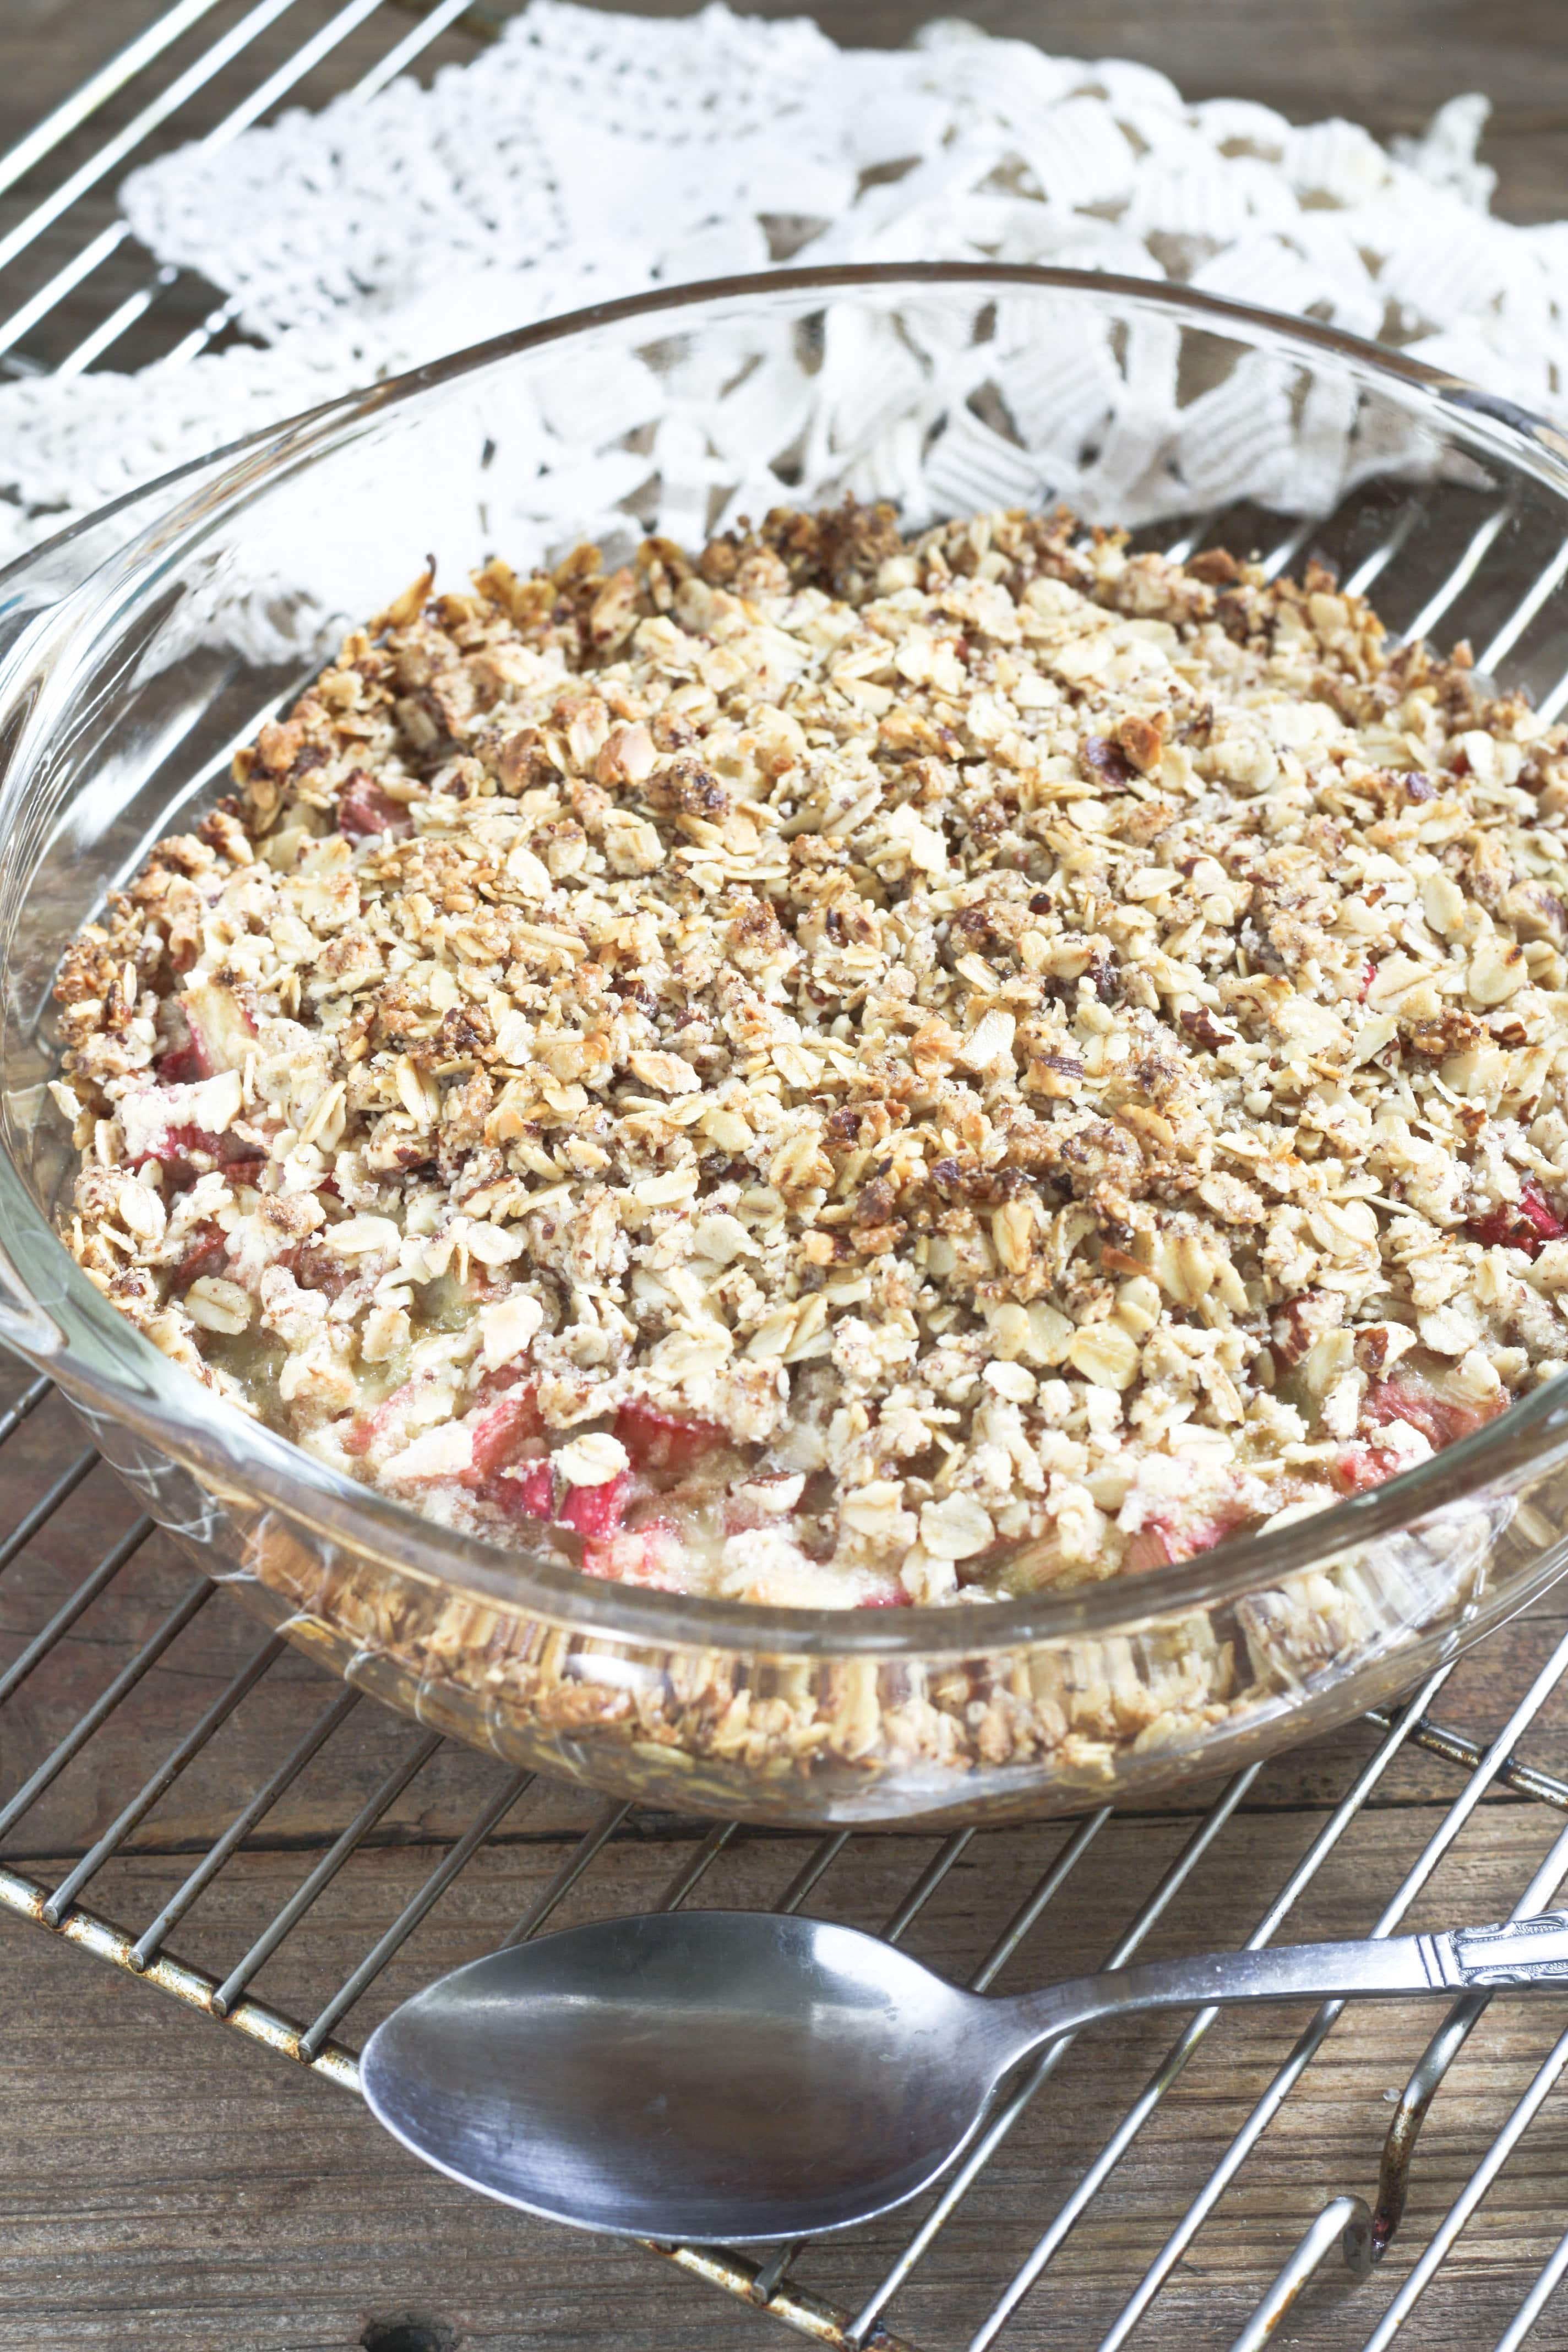 Whole Rhubarb Custard Crisp with spoon